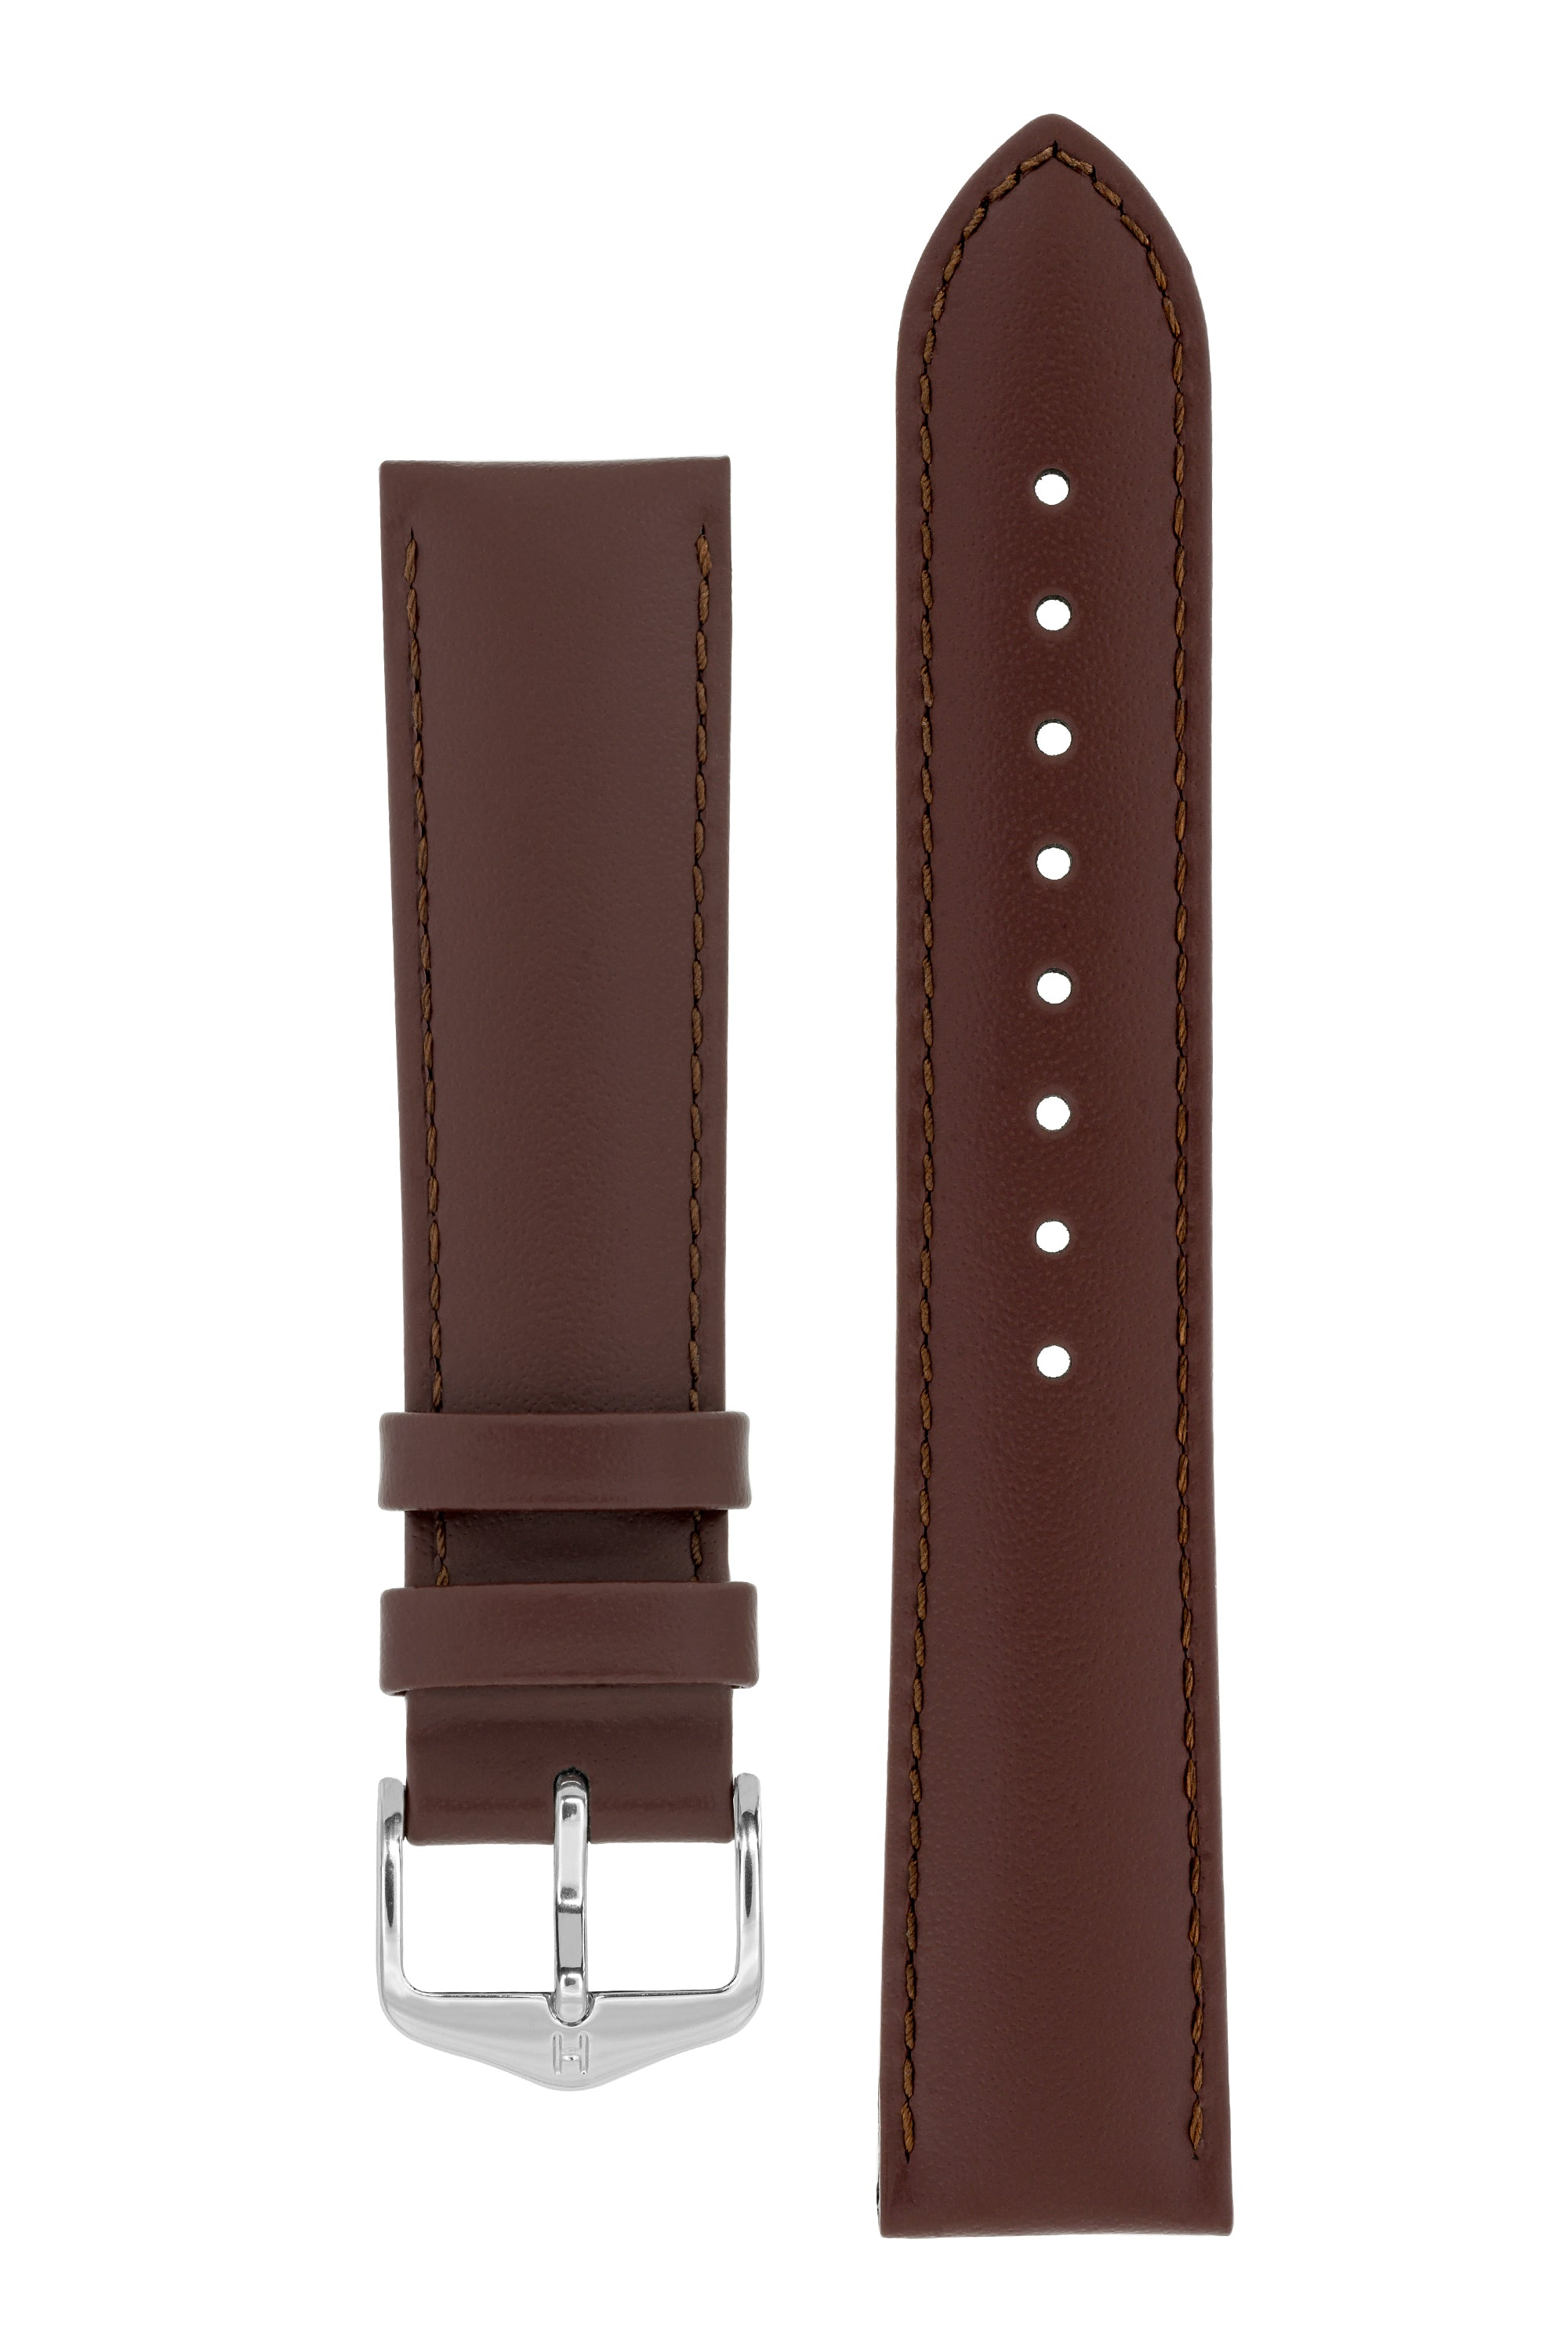 Hirsch CORSE Calf Leather Watch Strap in BROWN